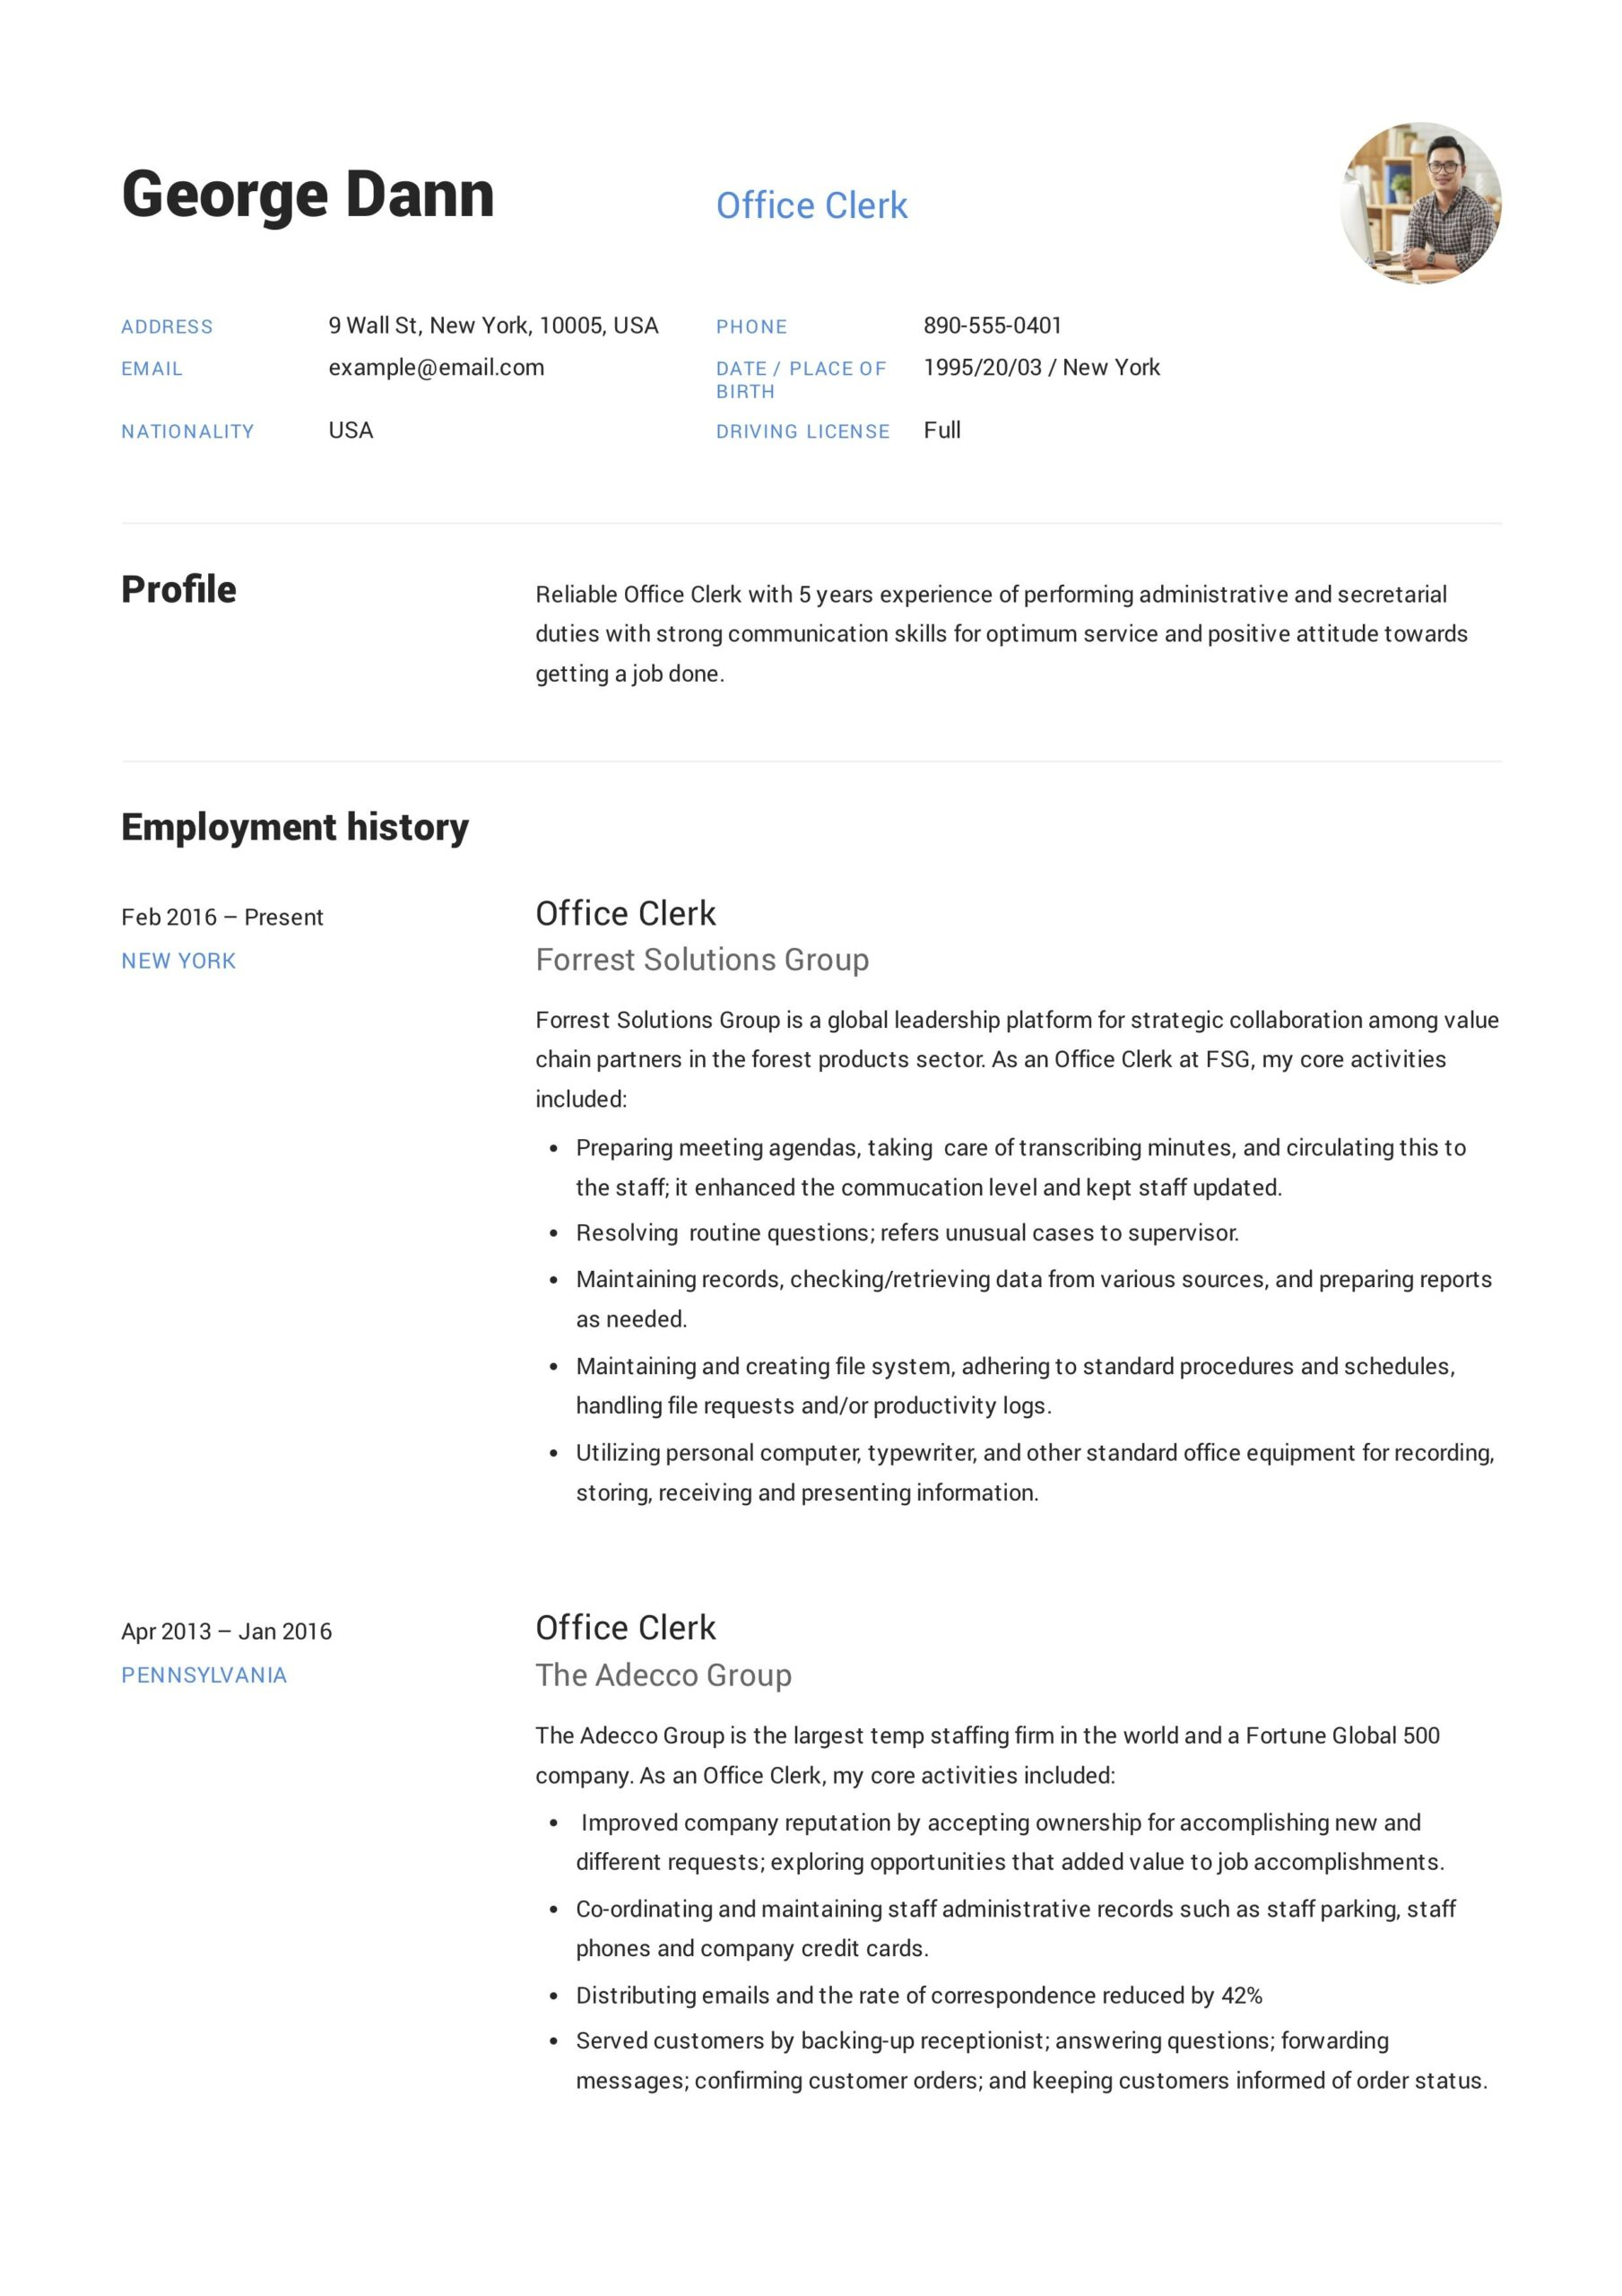 office clerk resume job examples guide summary objective for does your need address Resume Resume Objective For Office Clerk